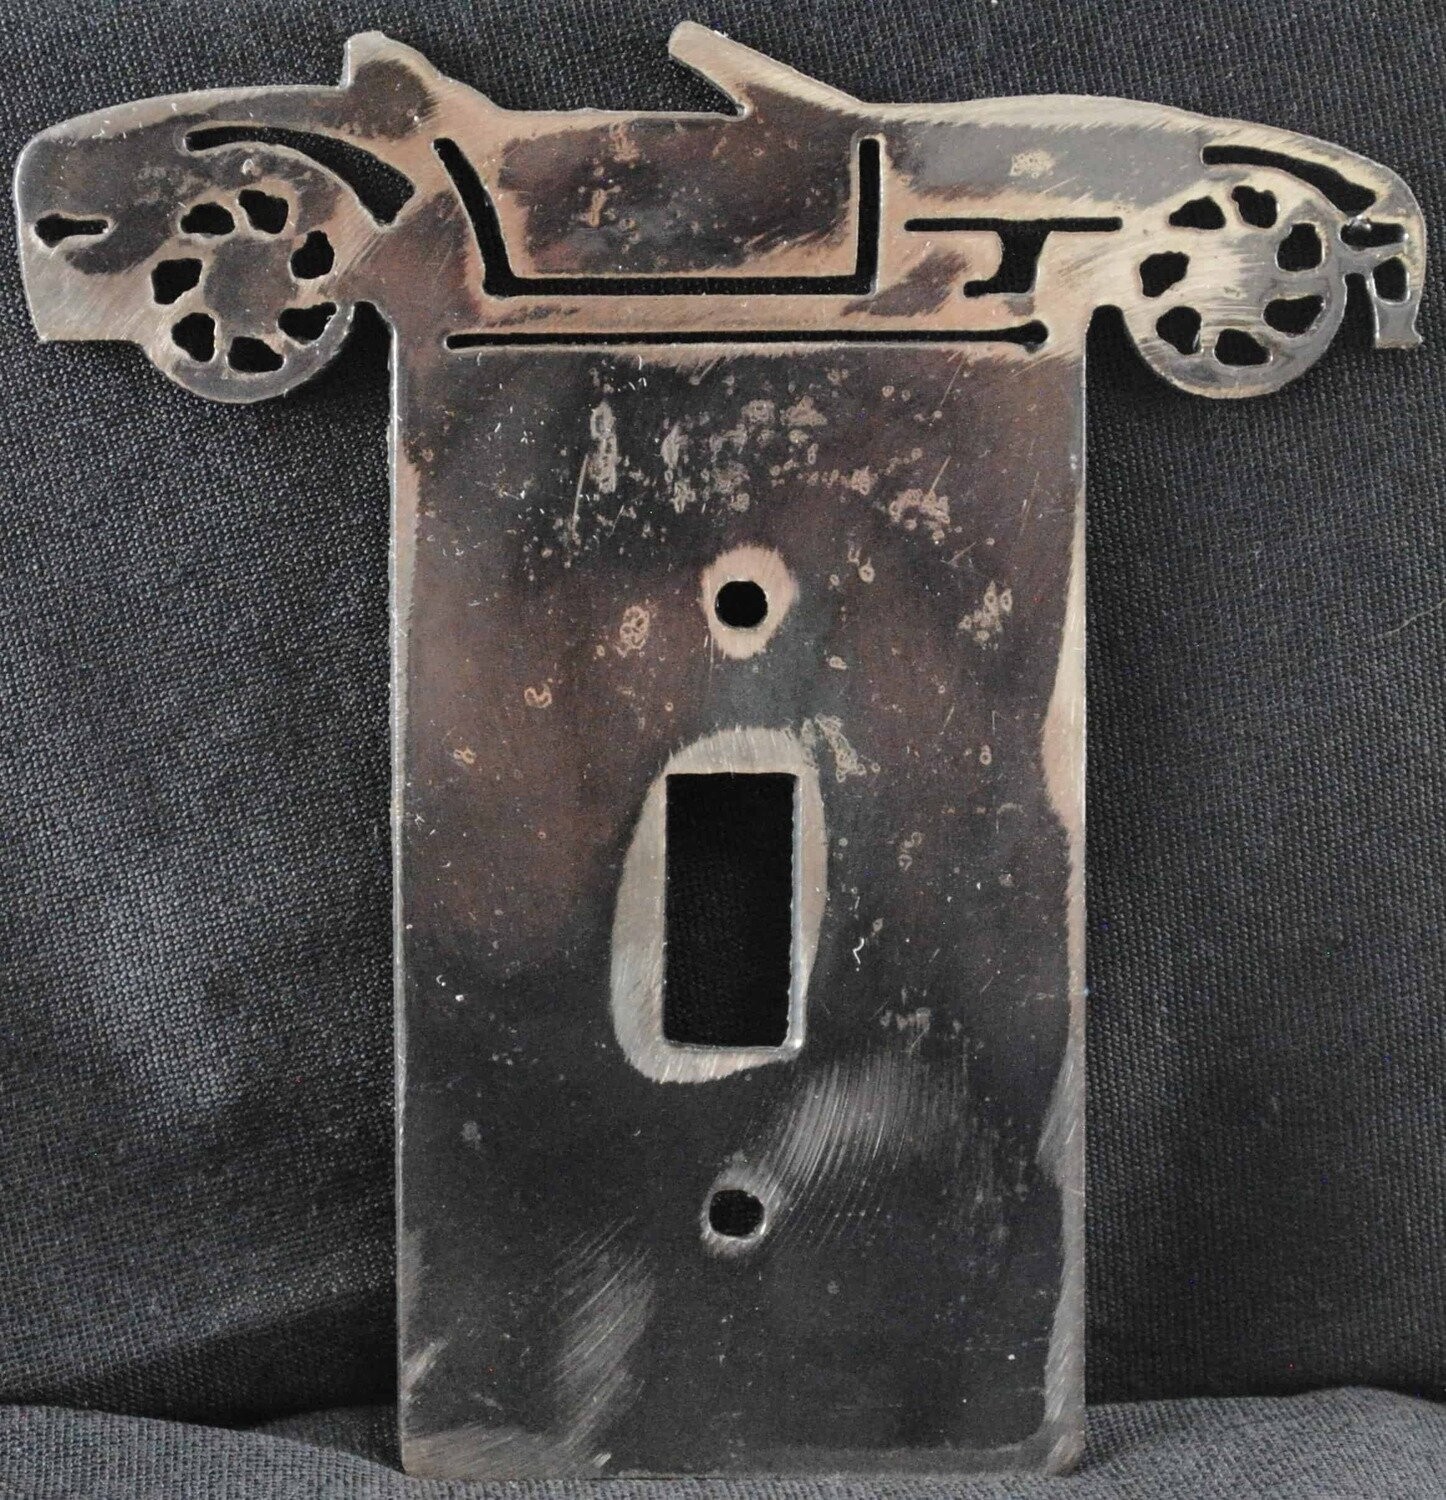 1994 Viper Light Switch Cover Plate